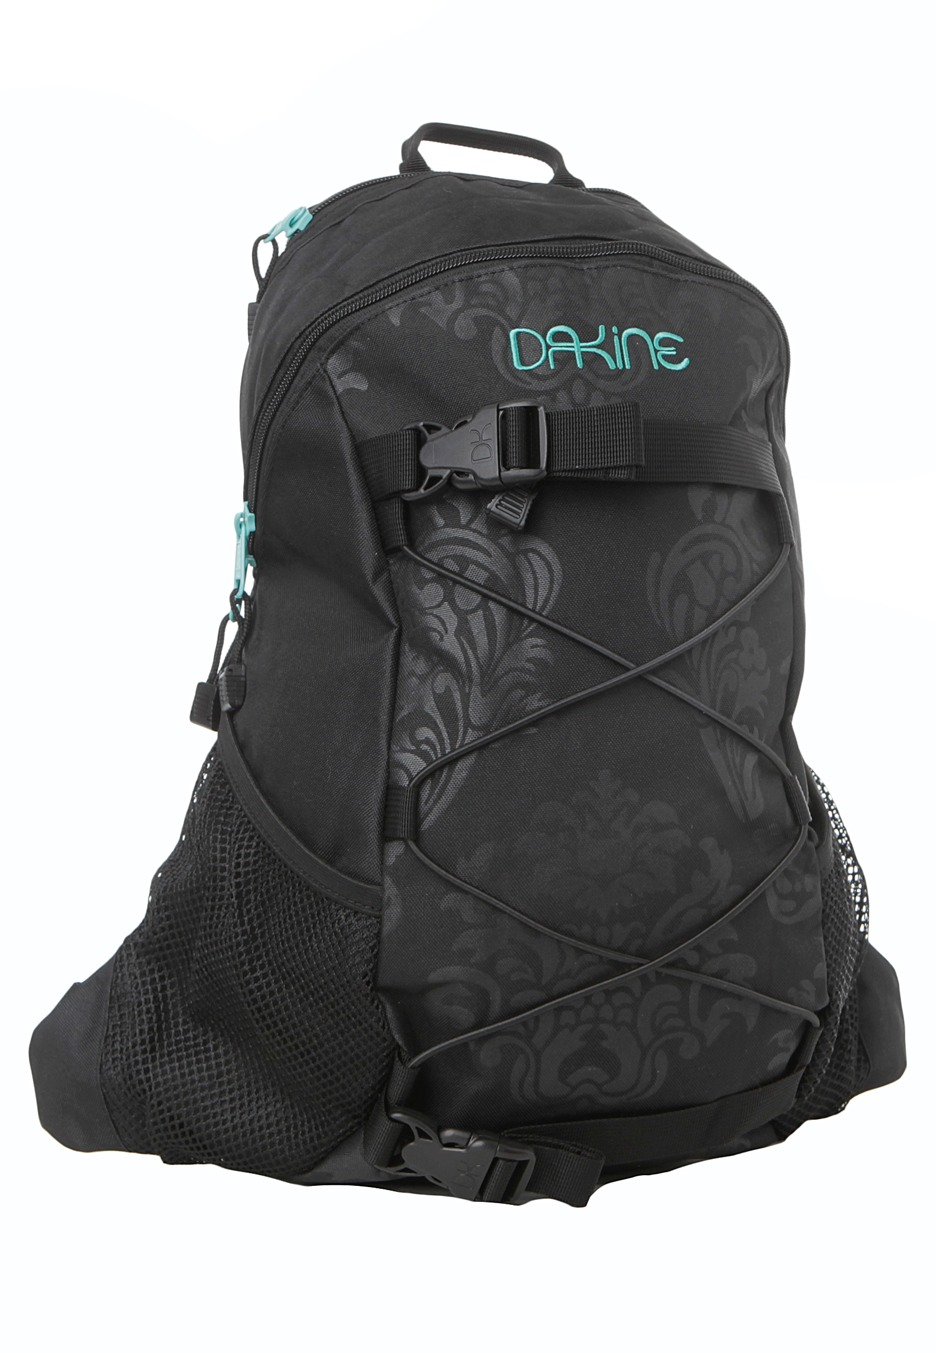 0dd23aac43071 Dakine - Womens Wonder Flourish - Girl Backpack - Impericon.com UK